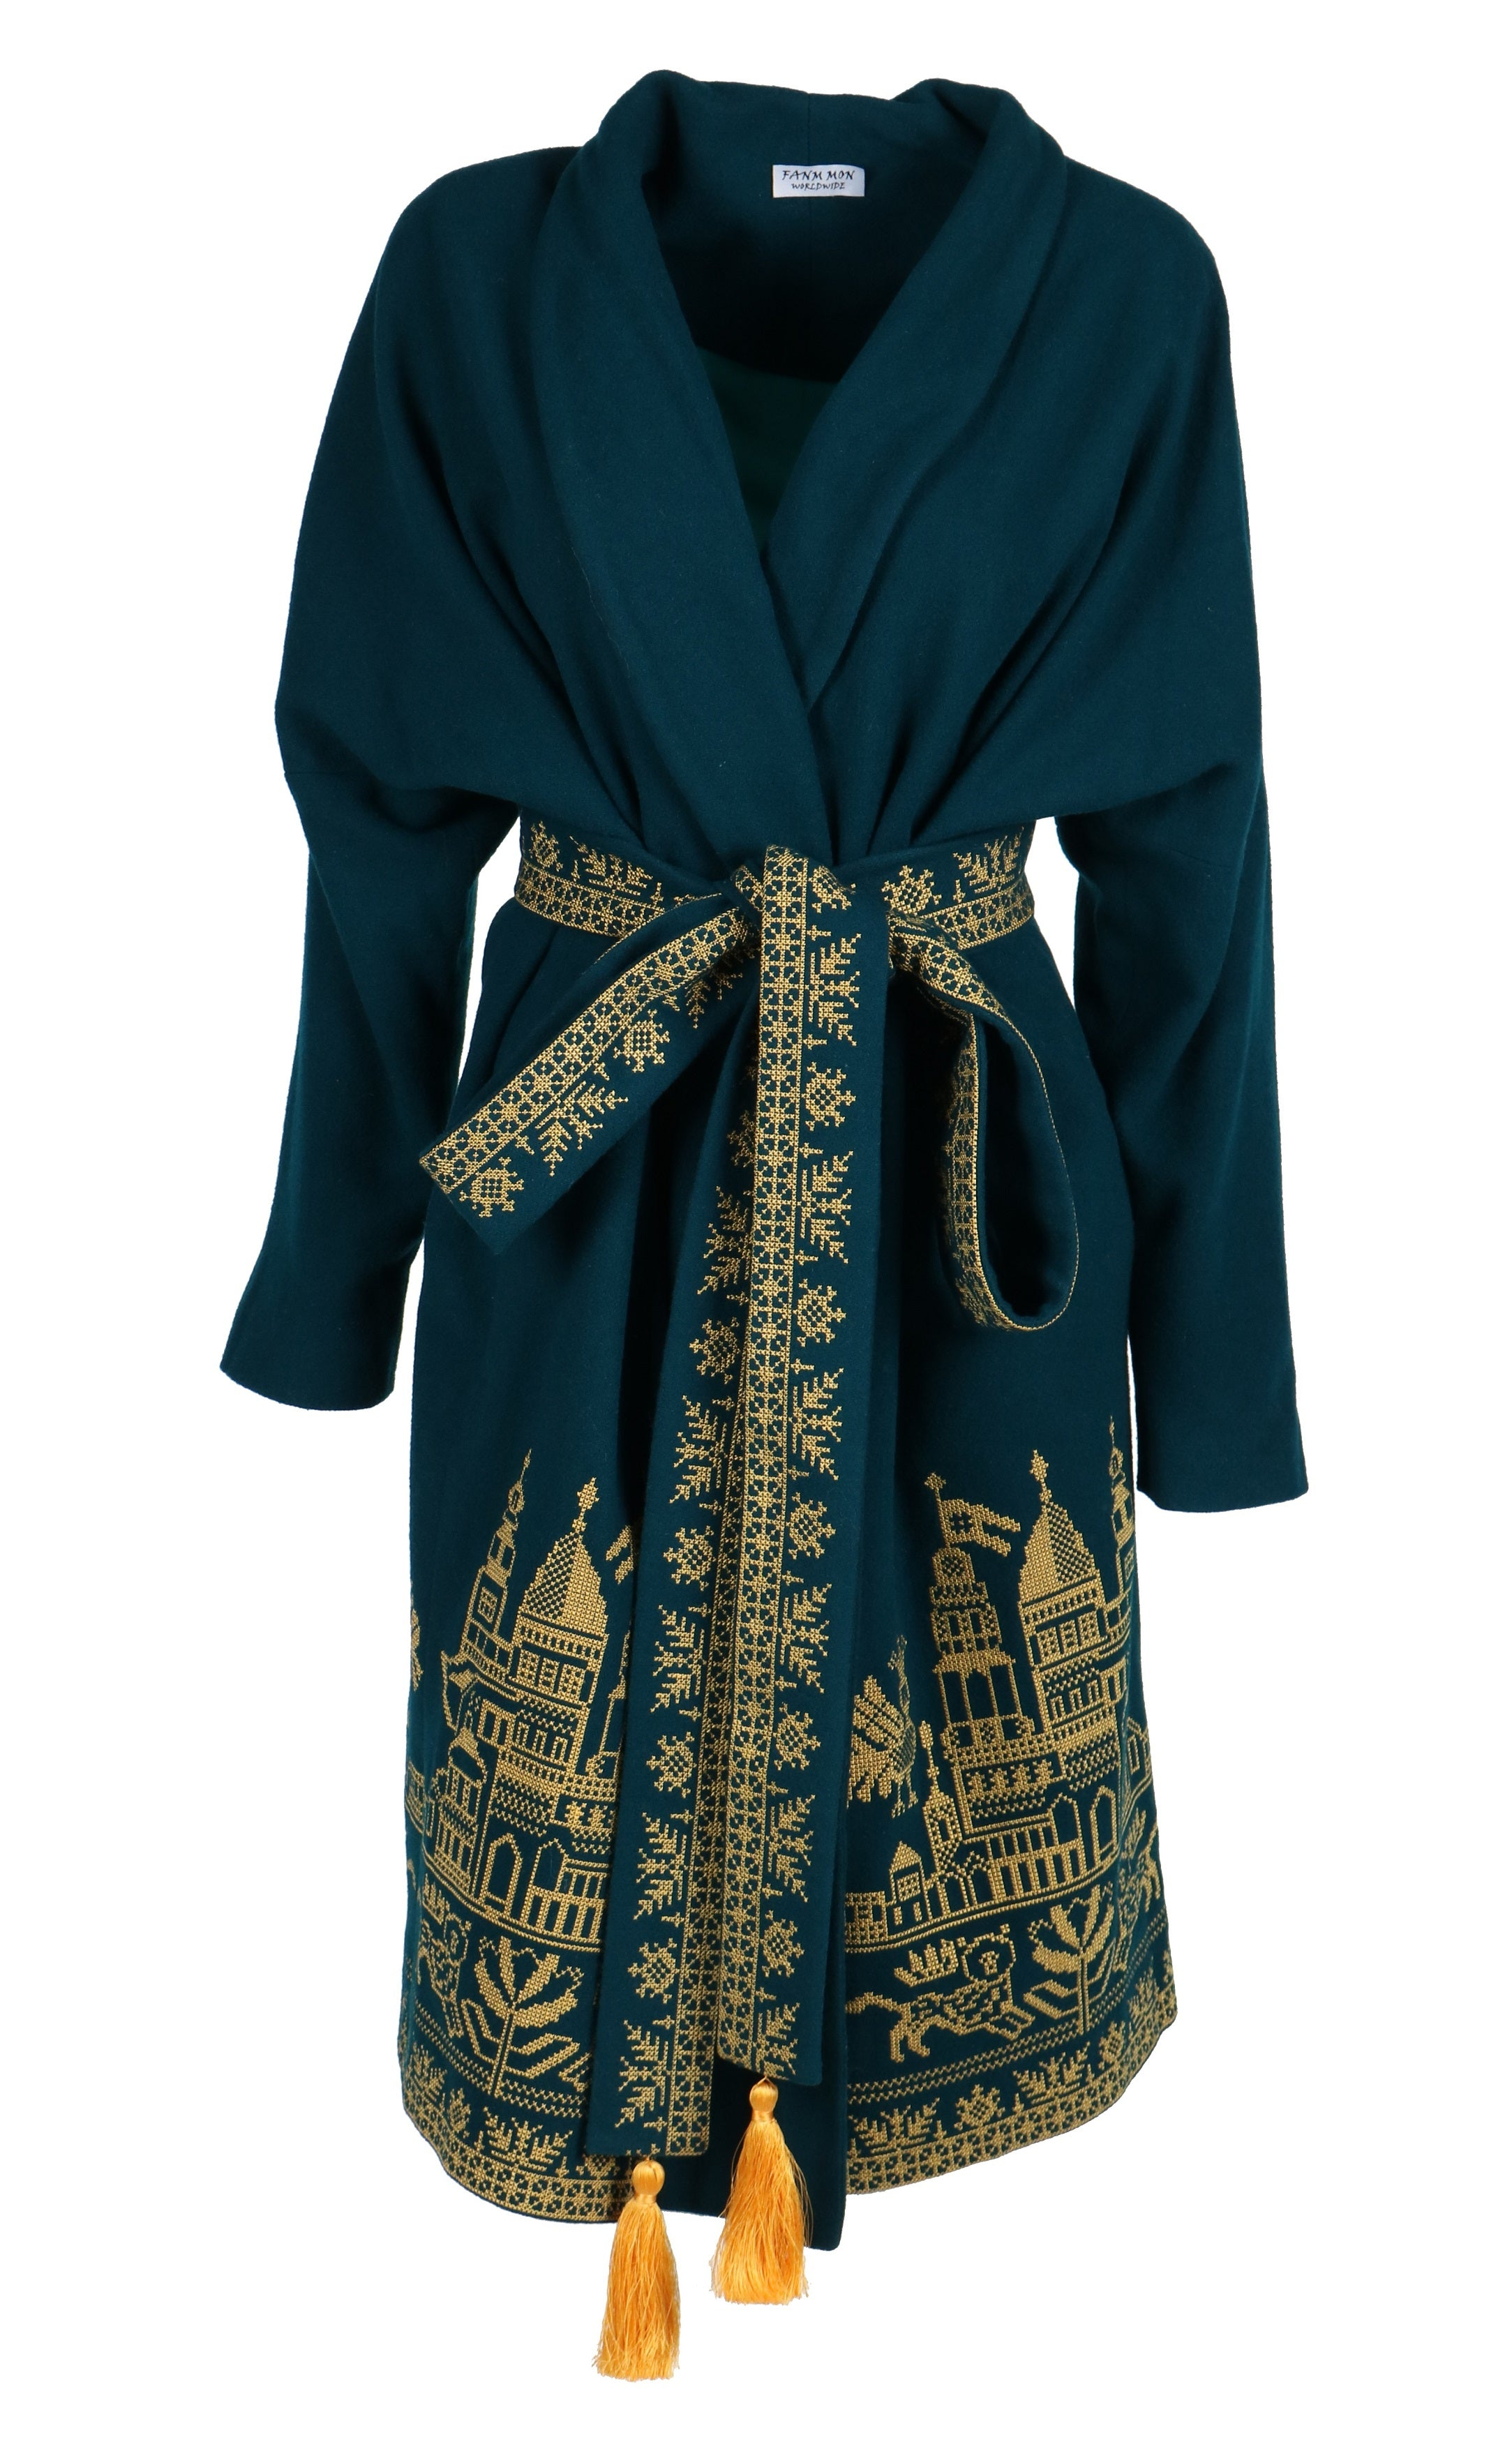 Fanm Mon TAELA Vyshyvanka DARK AQUA Wool GOLDEN Embroidered City Life Theme Coat